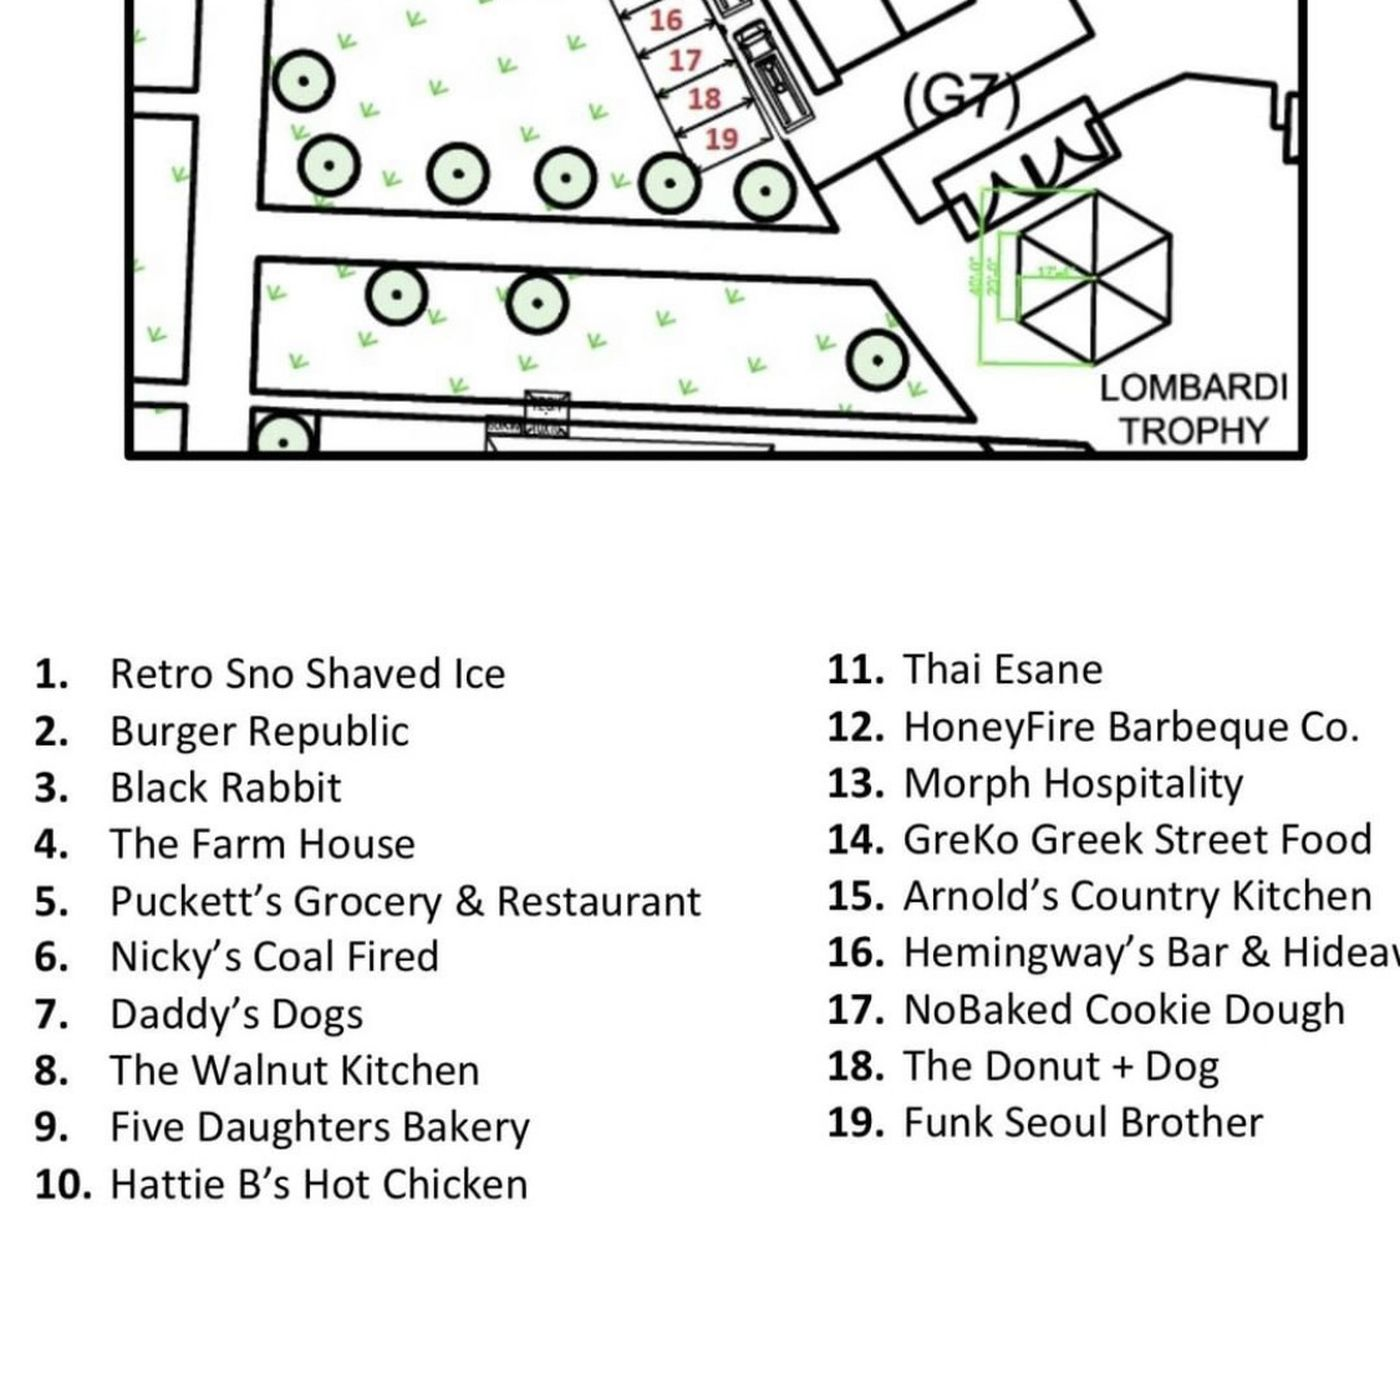 The 2019 NFL Draft Experience Is Featuring 19 Nashville ... Ice House Plans on ice appliances, iceshanty plans, ice box plans, ice boat plans, ice houses in the 1800s, 8x10 ice shack plans, ice trailer plans, plant press plans, ice signs, ice office, stable plans, ice dogs, ice wedding, ice building, rustic ice chest plans, indoor riding arena building plans, ice houses on farms, ice landscaping, ice furniture, ice luge stand plans,